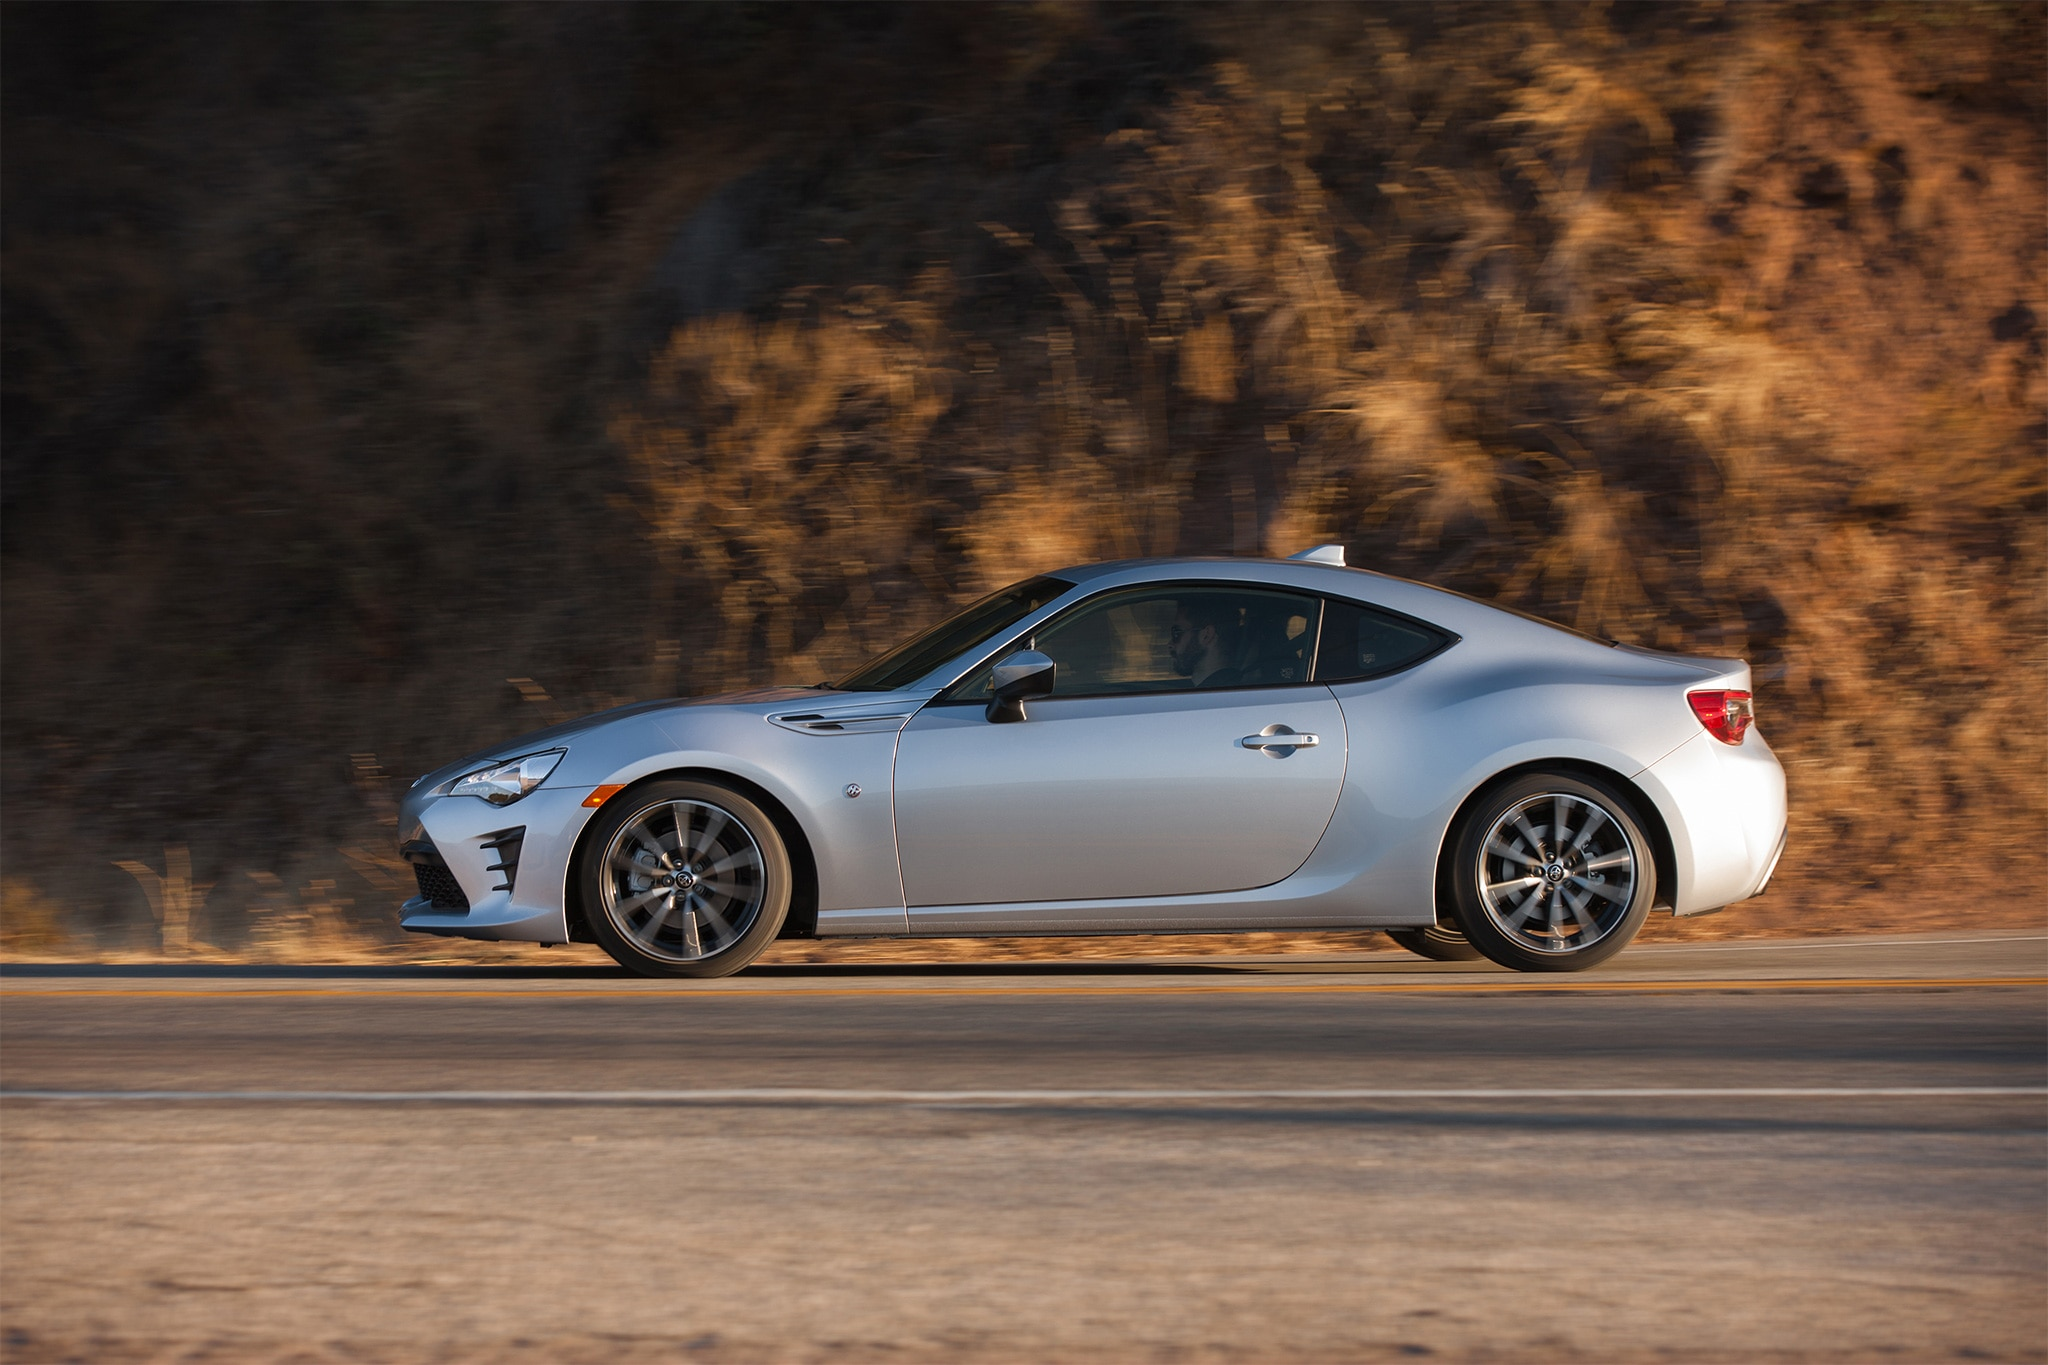 2017 Toyota 86 side profile in motion